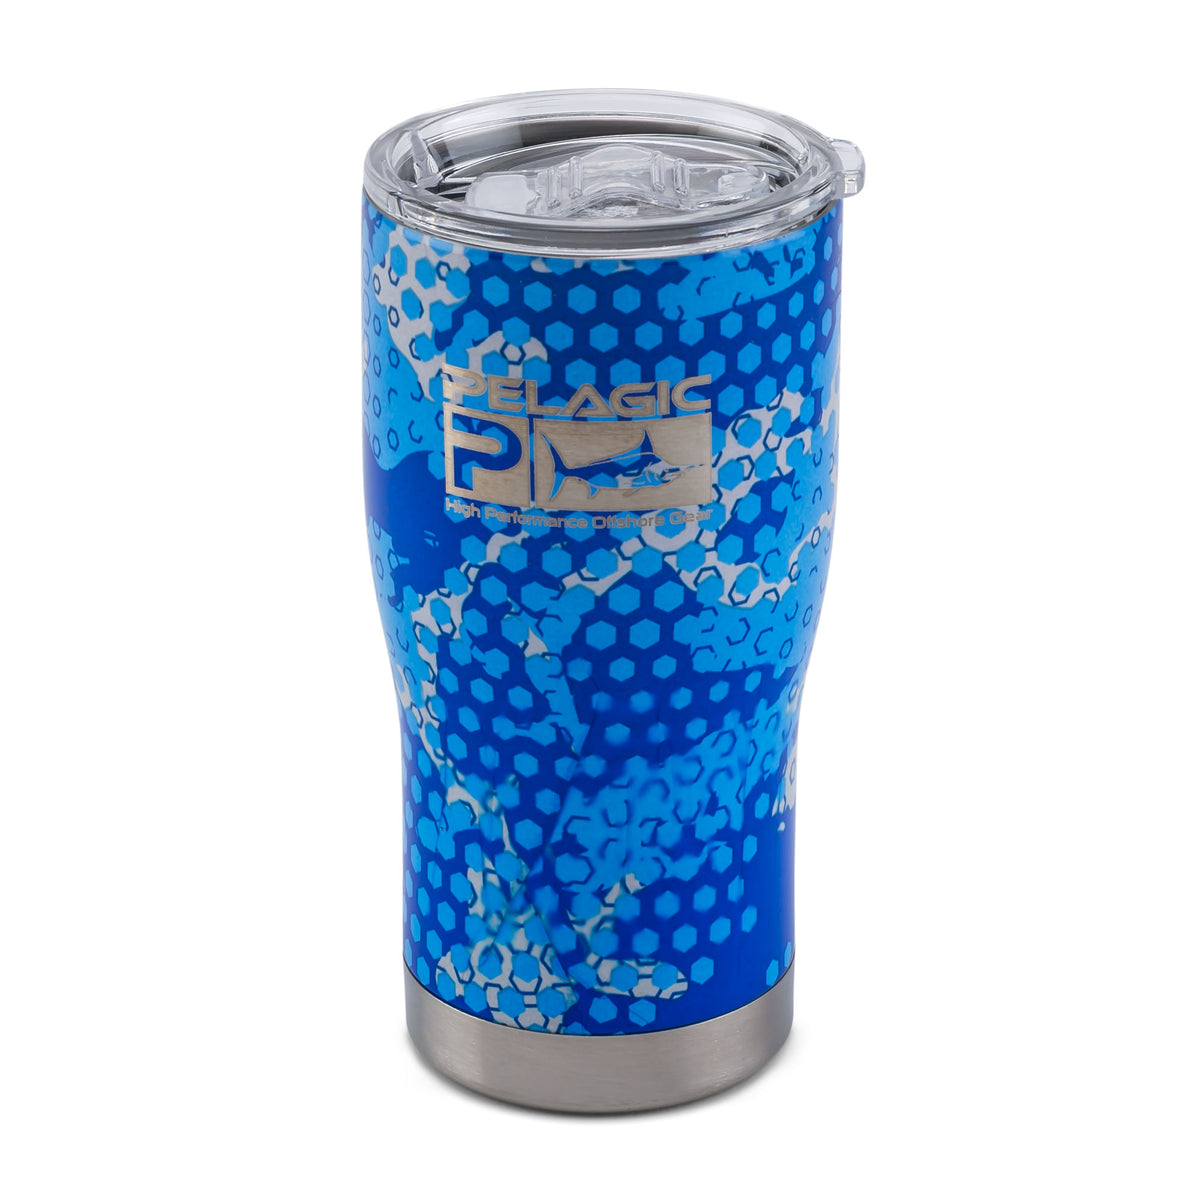 20 OZ. Insulated Tumbler Cup Big Image - 1